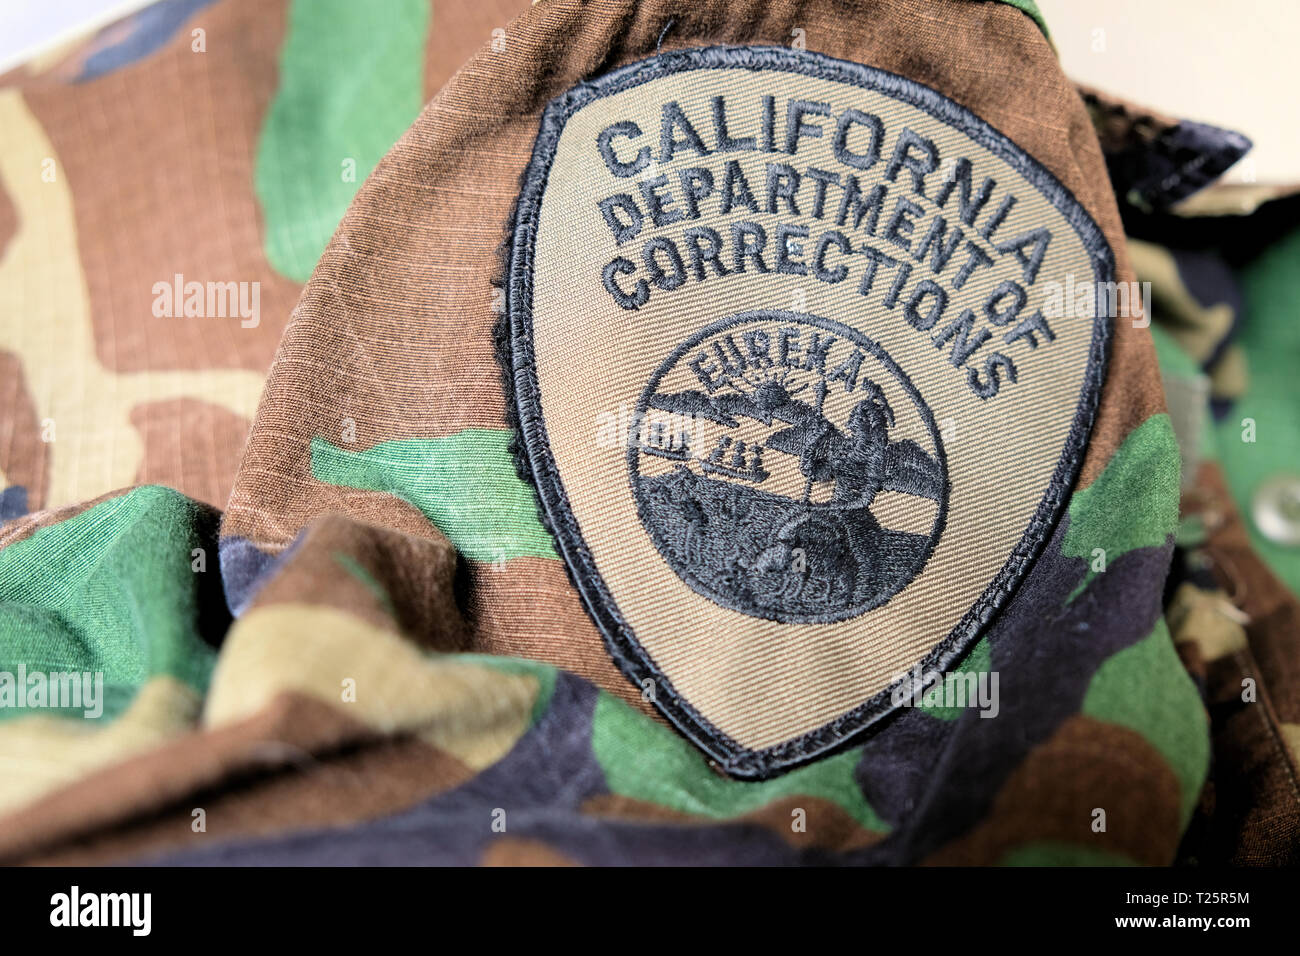 California Department of Corrections uniform patch; logo on correctional officer uniform; correctional officers. - Stock Image